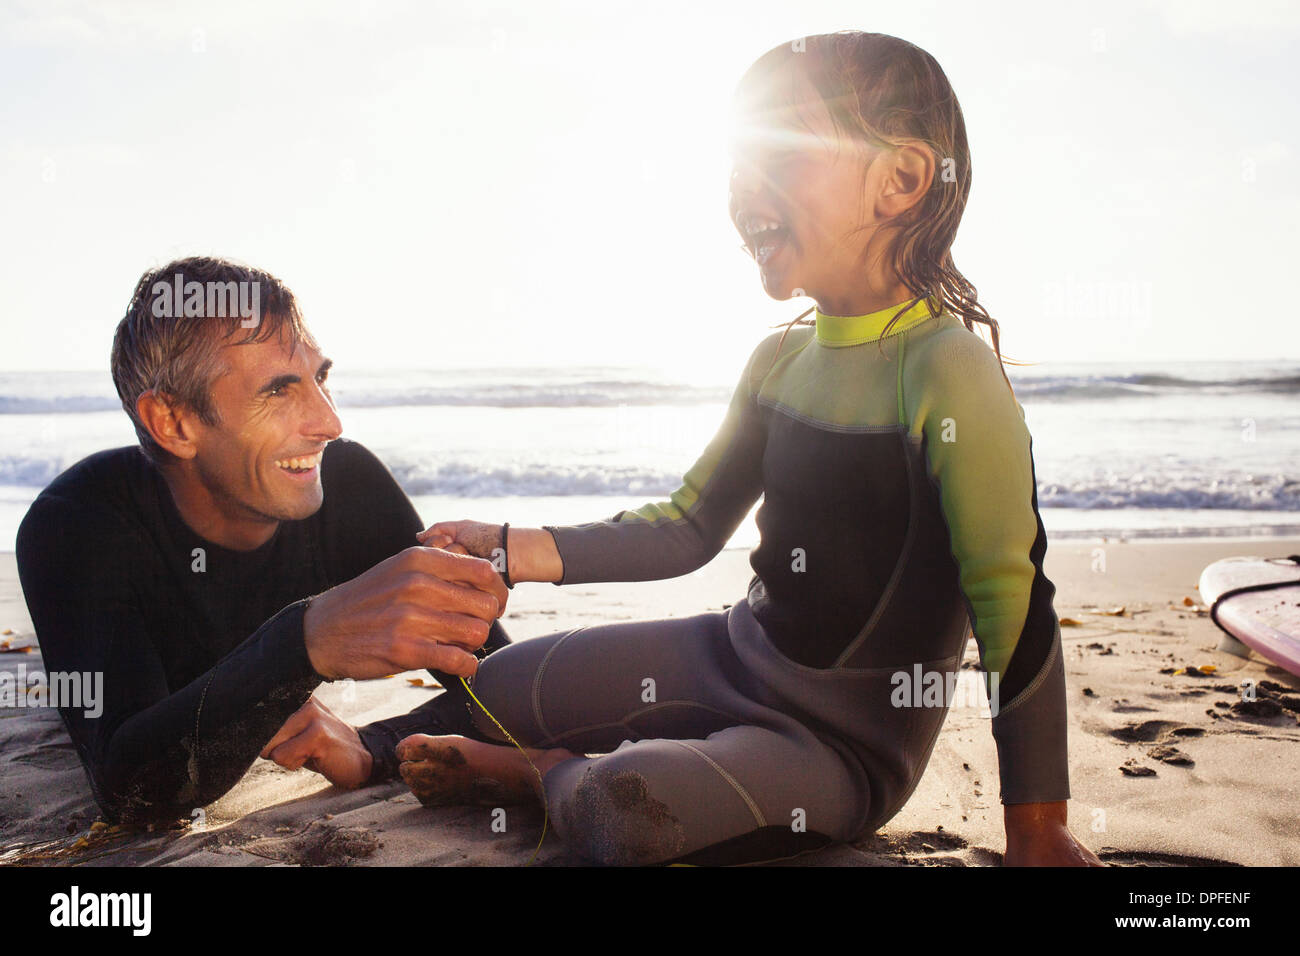 Father and daughter holding hands on beach, Encinitas, California, USA - Stock Image